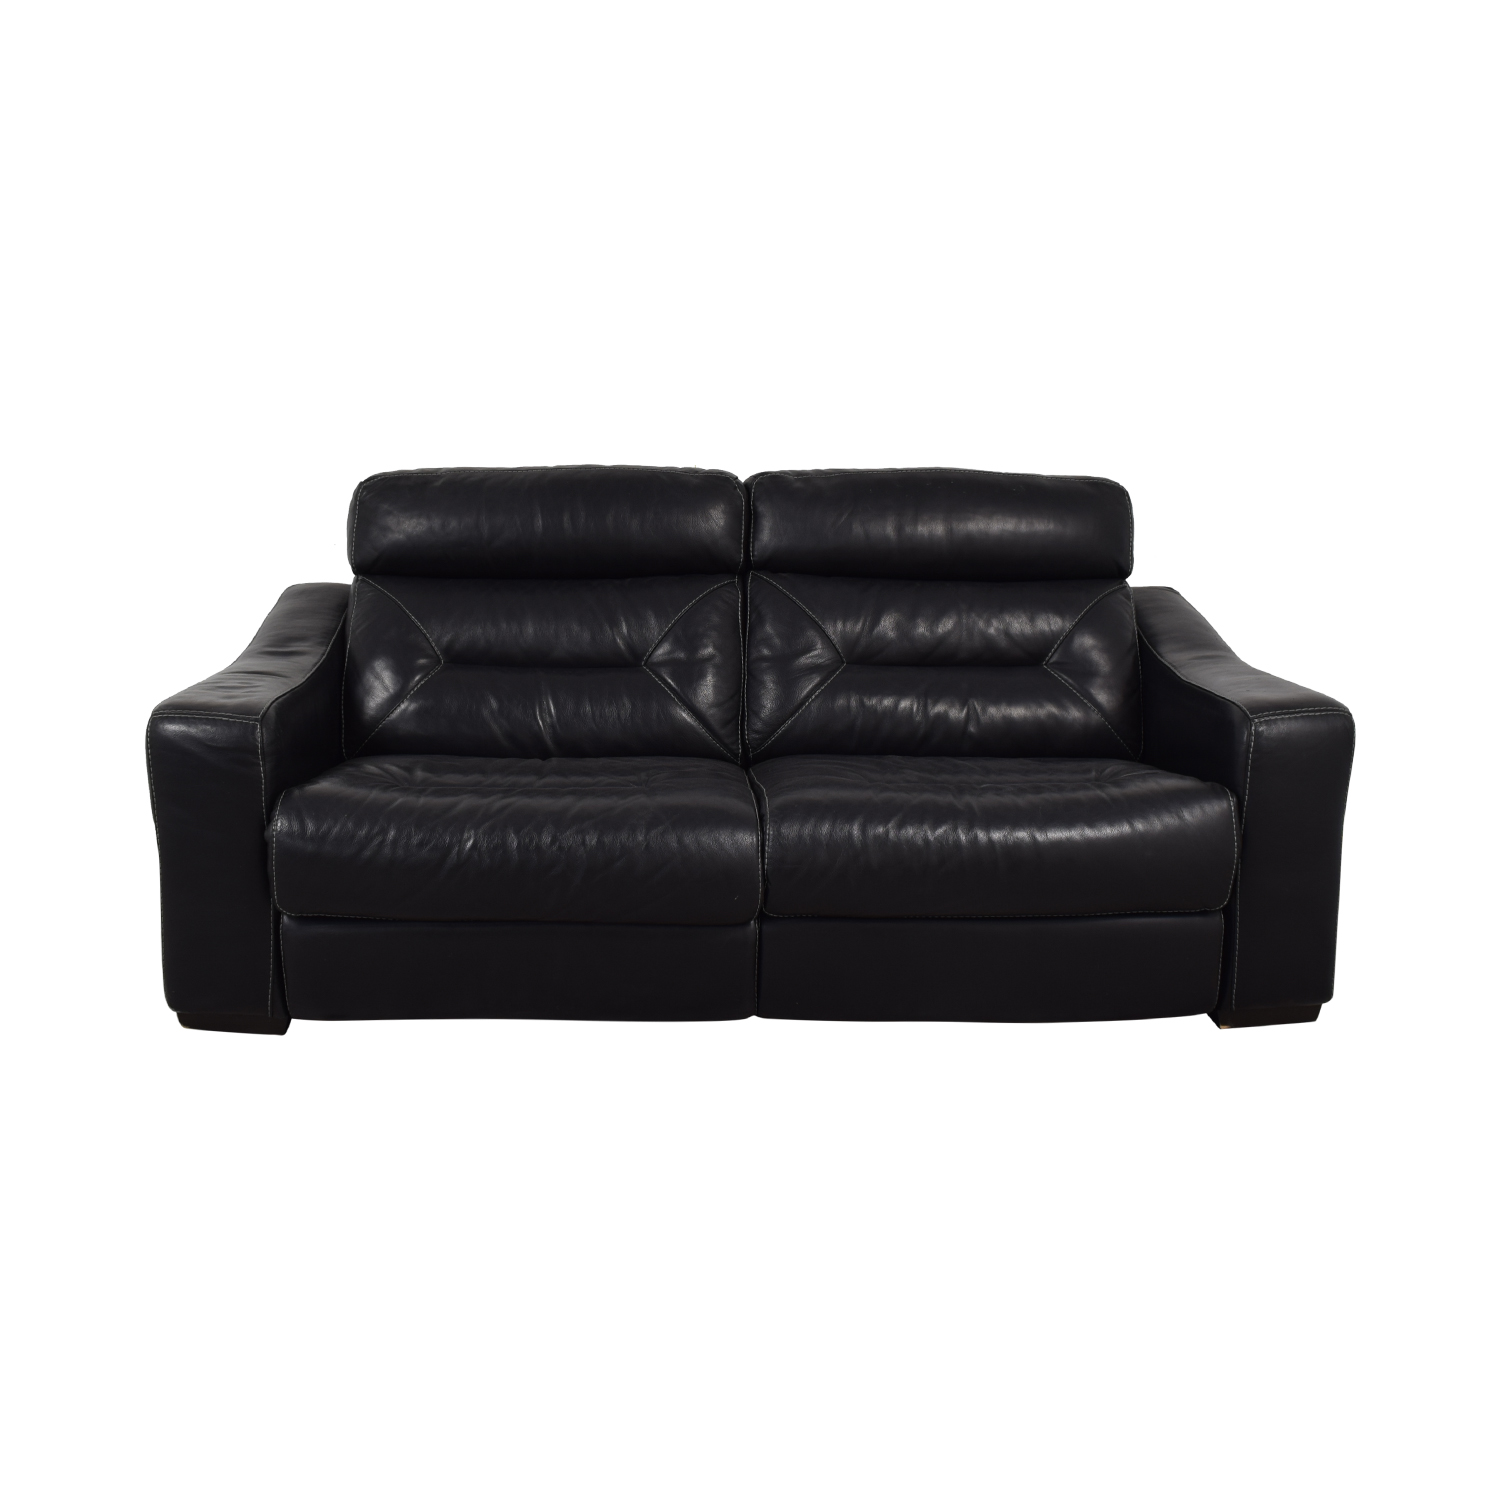 Macy's Macy's Judson Leather Dual Power Reclining Loveseat nj